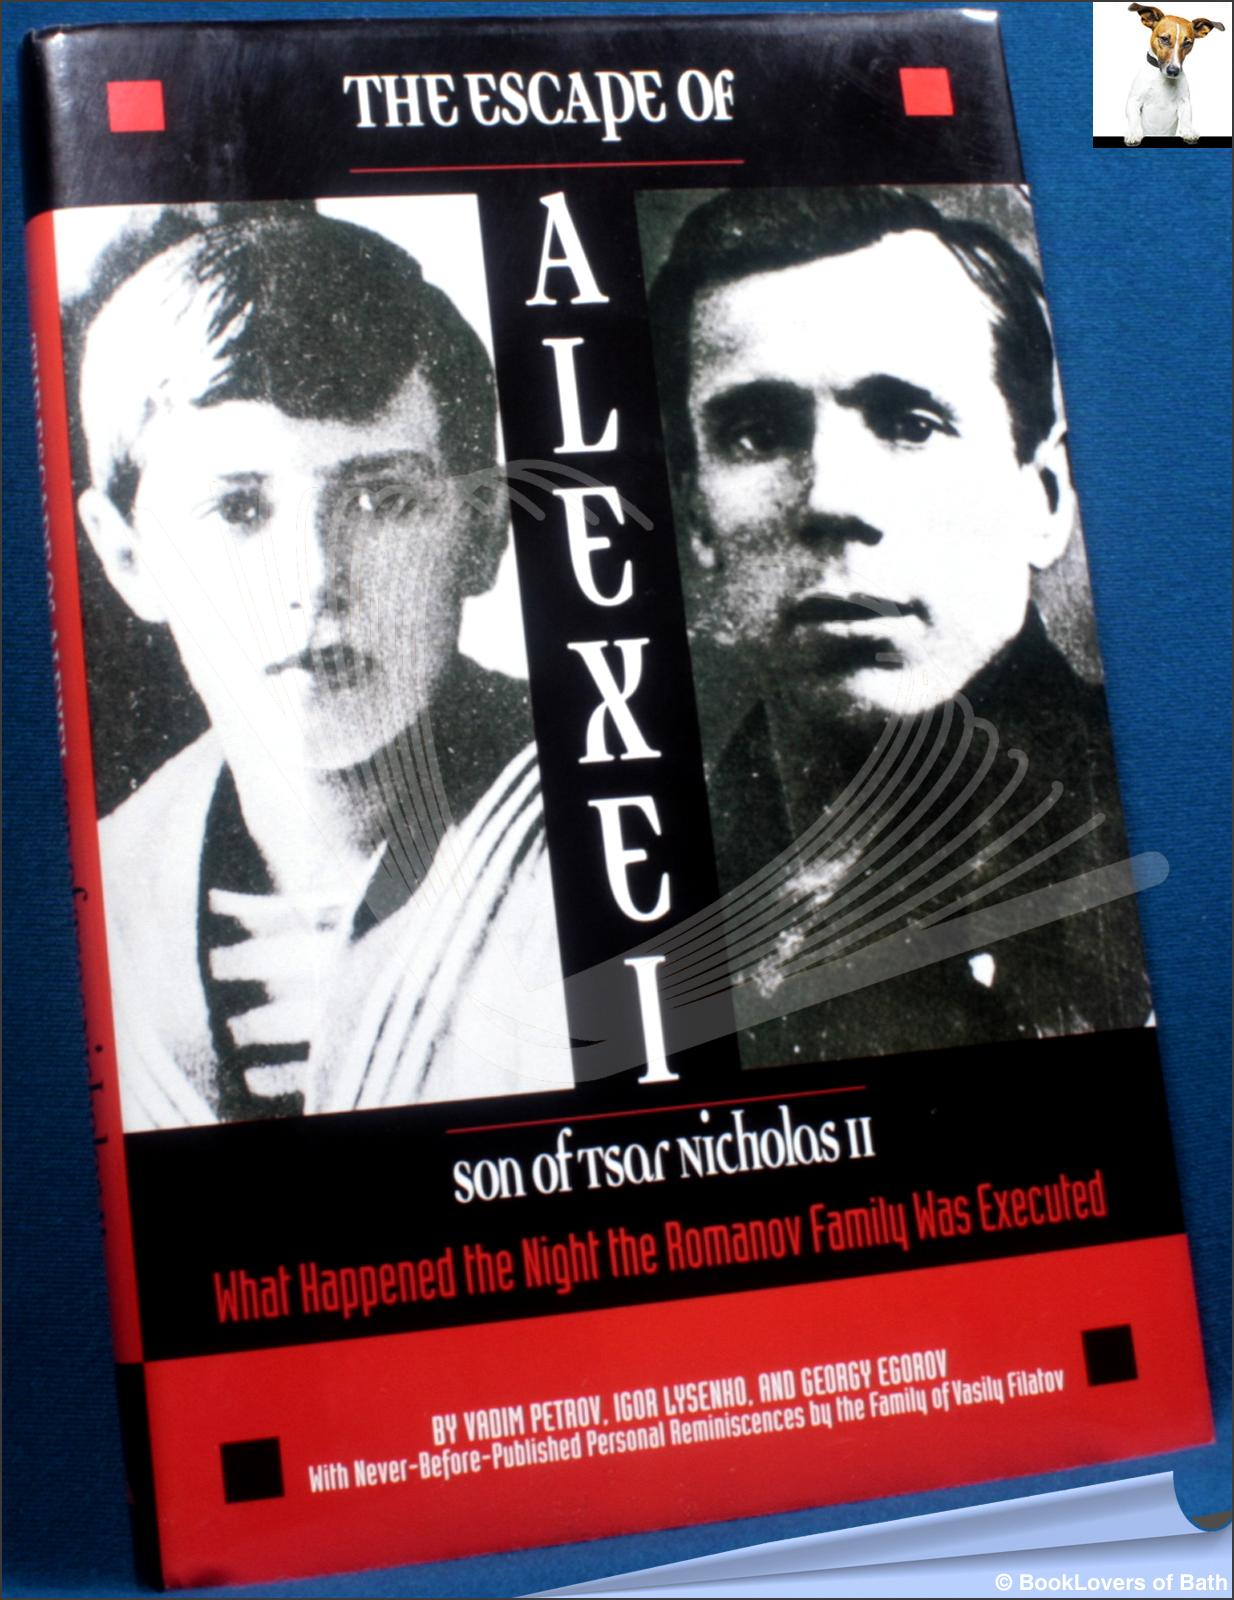 The Escape of Alexei, Son of Tsar Nicholas II: What Happened the Night the Romanov Family Was Executed - Vadim Petrov, Igor Lysenko & Georgy Egorov